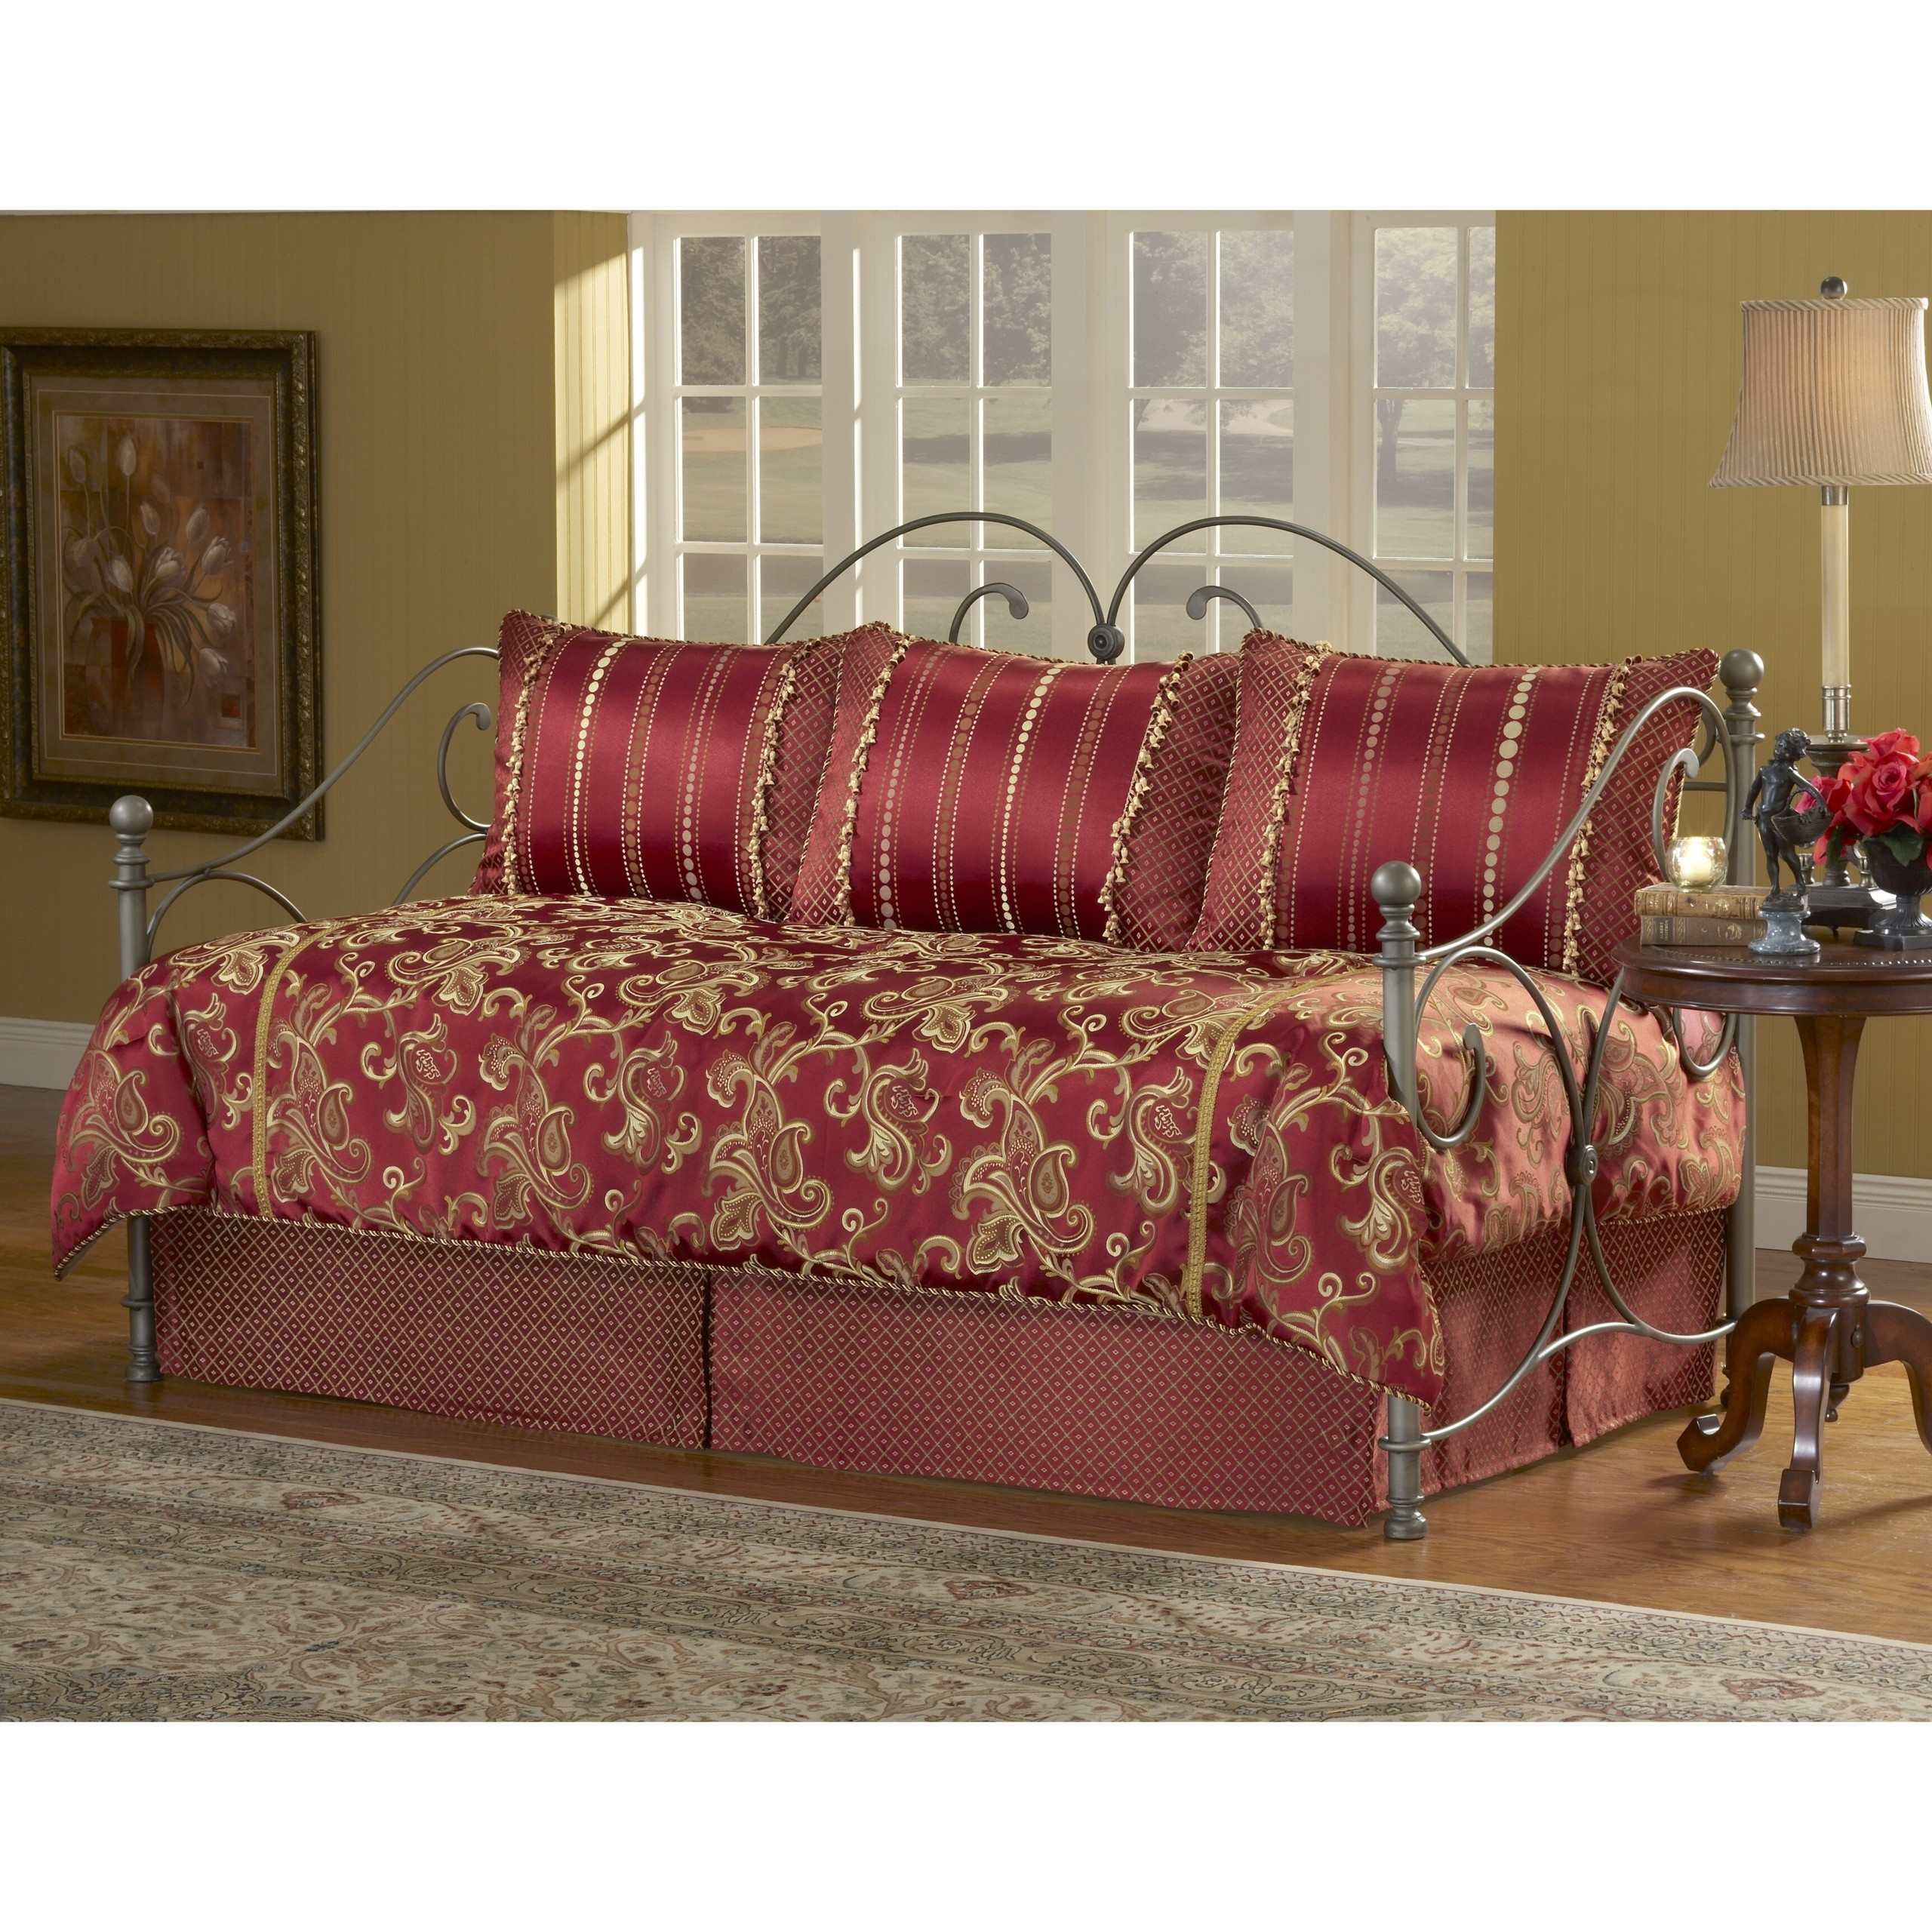 Ensemble 5 Piece Daybed Set Comforter Pillow Shams Bed Skirt Red Twin Gift